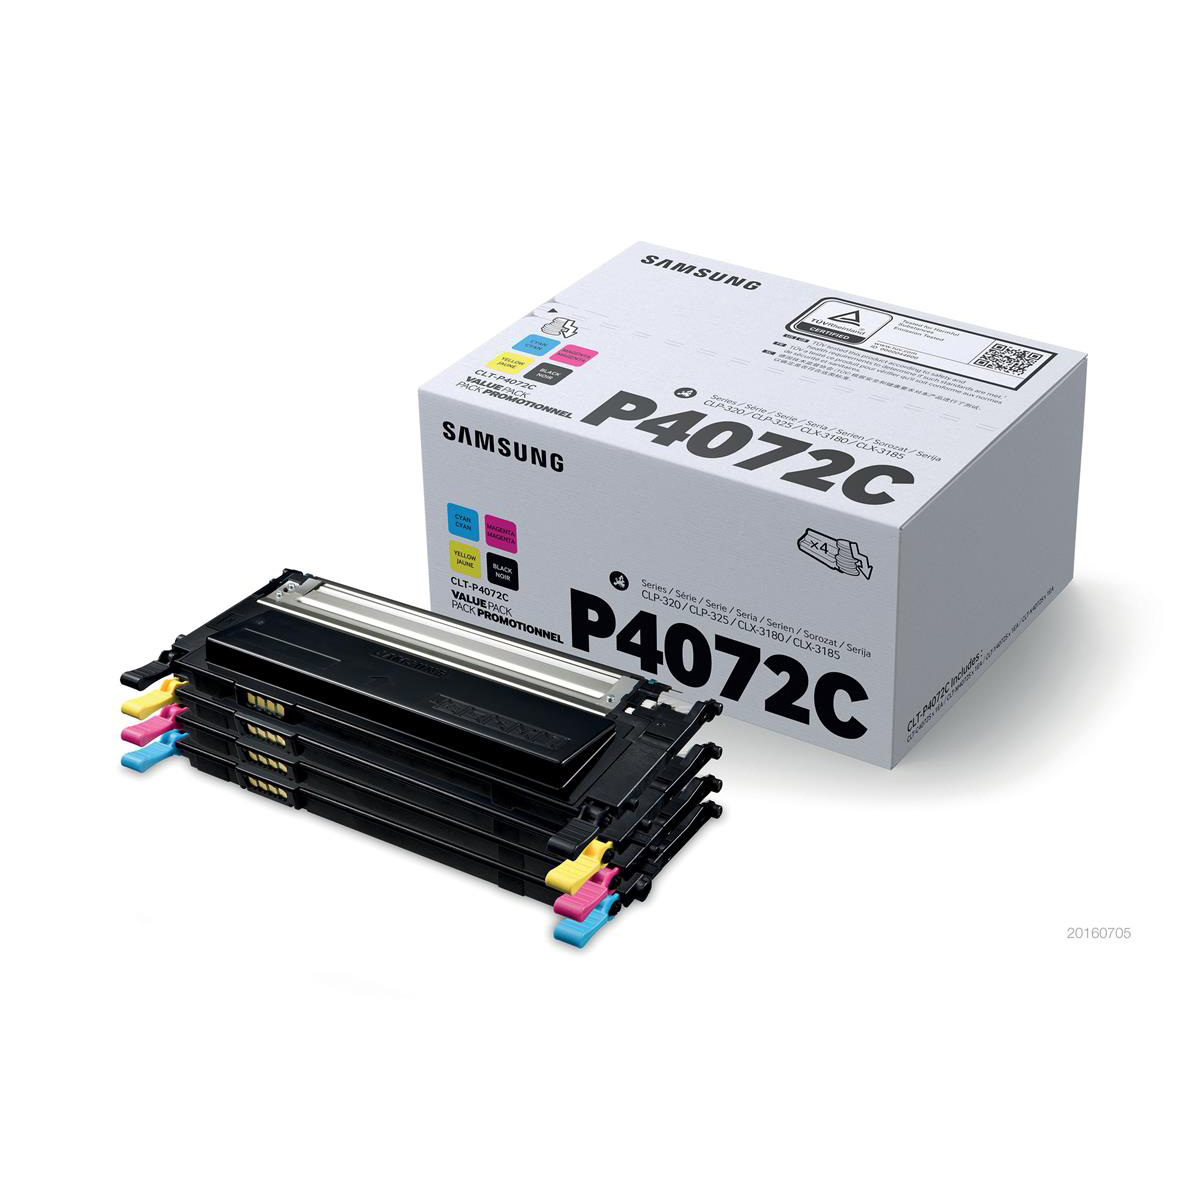 Samsung CLT-P4072C Toner CartPage Life1500ppBlack/Cyan/Magenta/Yell 1000pp Ref CLT-P4072C SU382A[Pack 4]